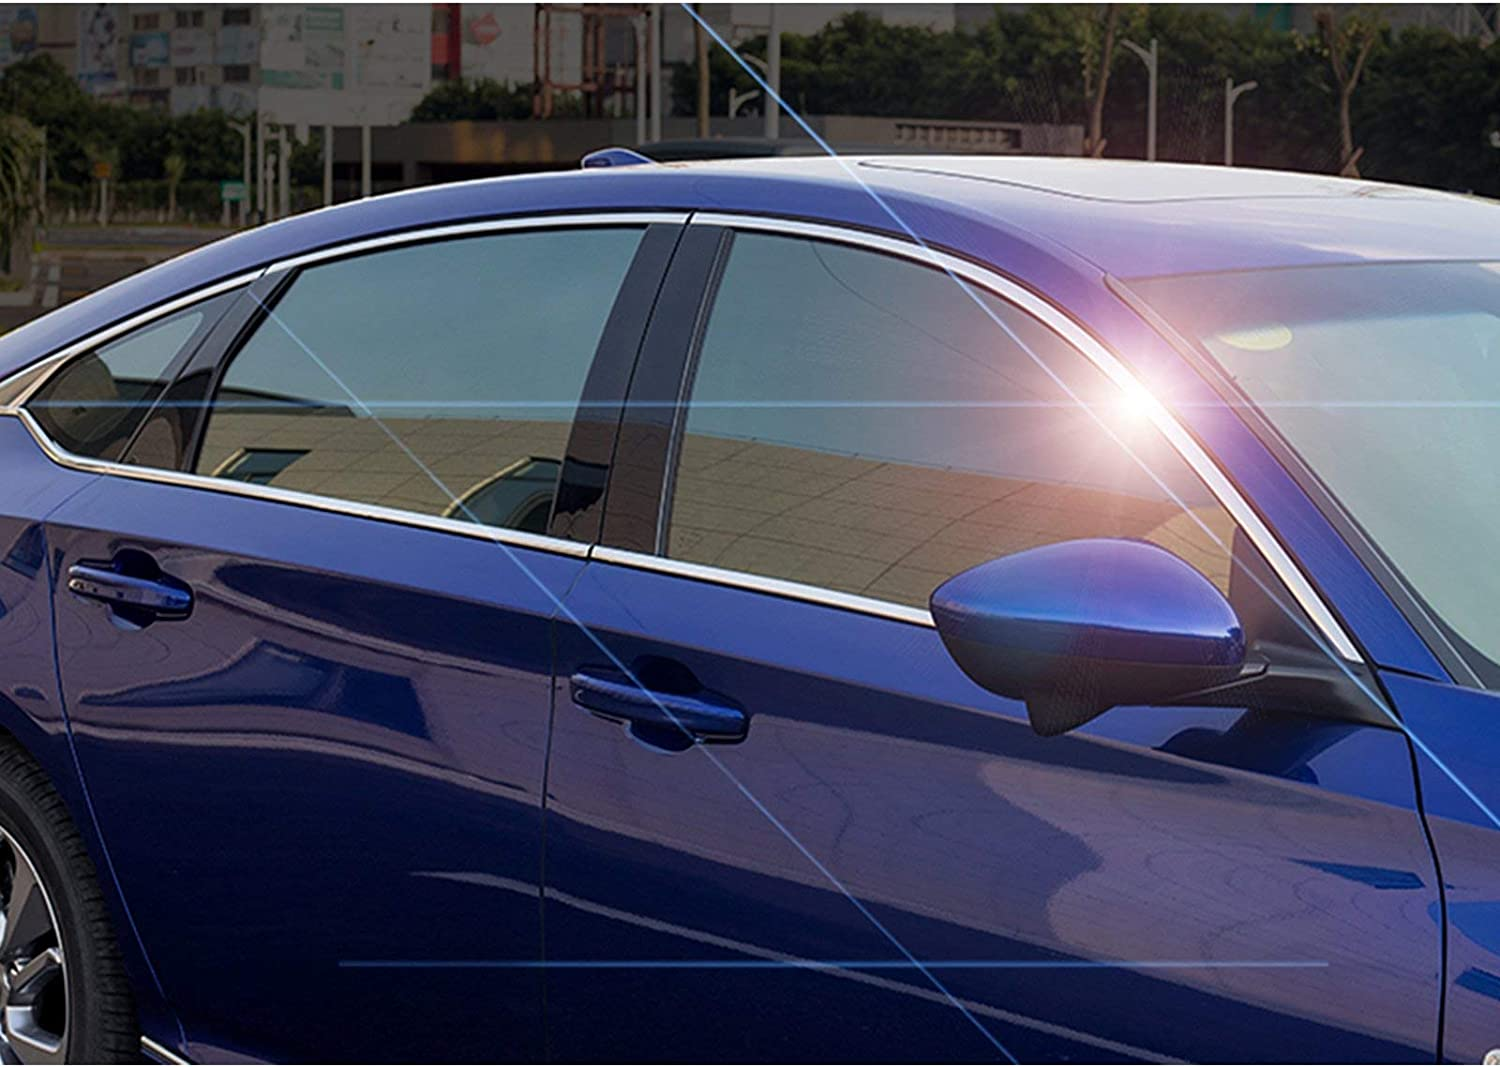 Xotic Tech 6pcs Stainless Steel Car Window Lower Bottom Frame Cover Molding Trim for Honda Accord 10th 2018 2019